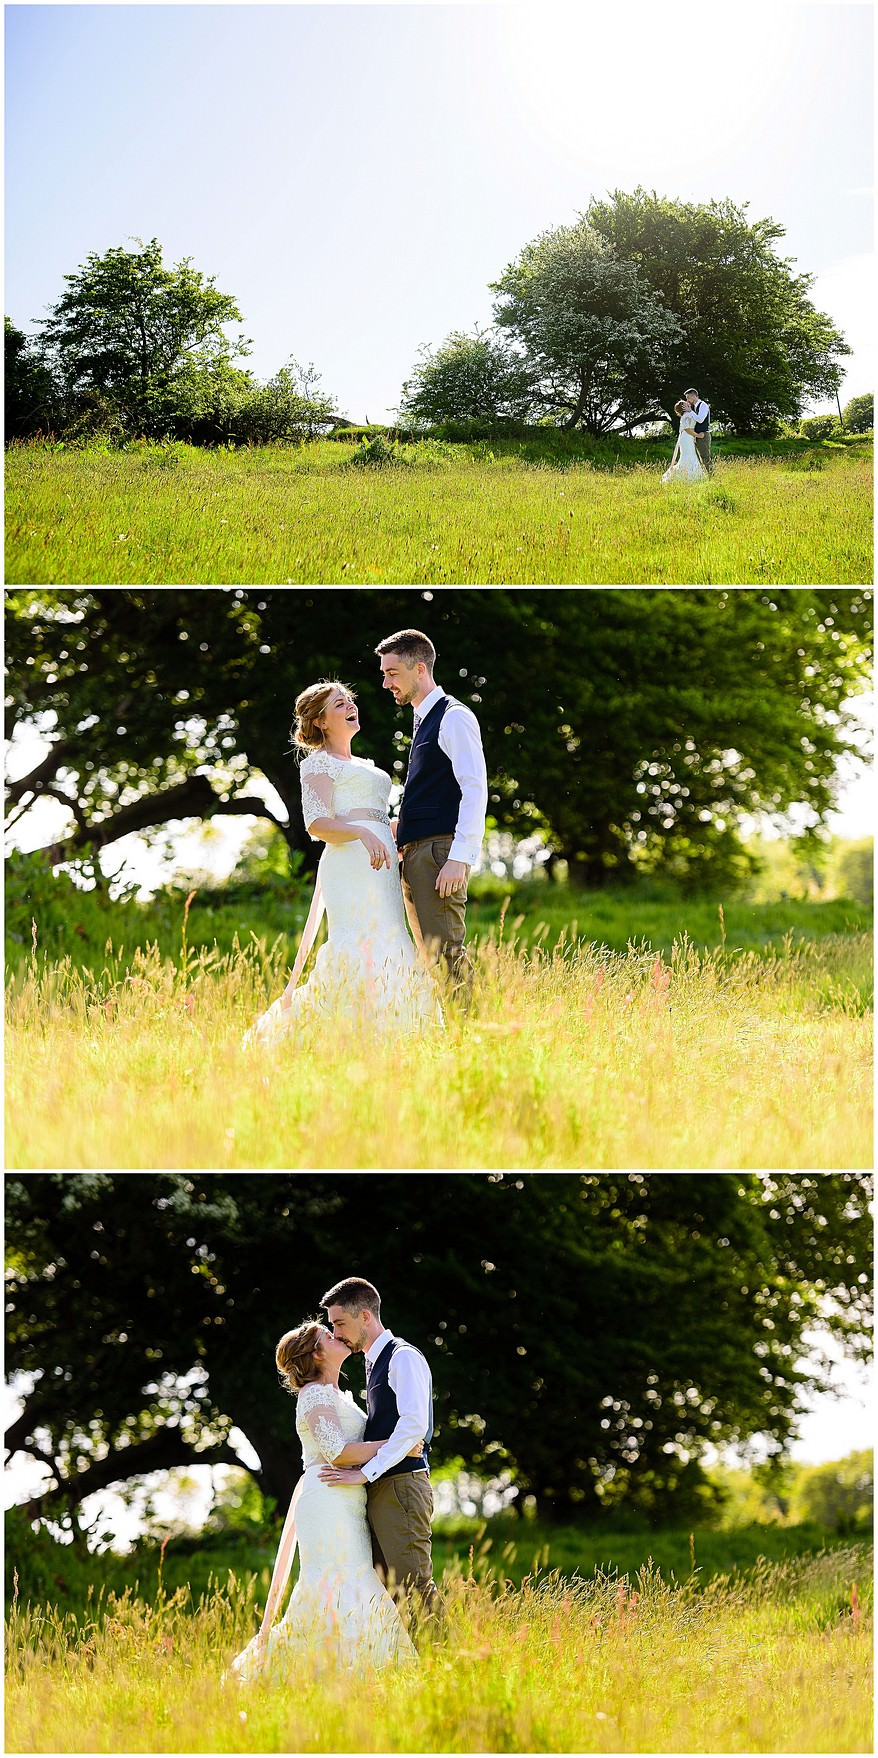 Trevenna barns wedding photographer in St Neot